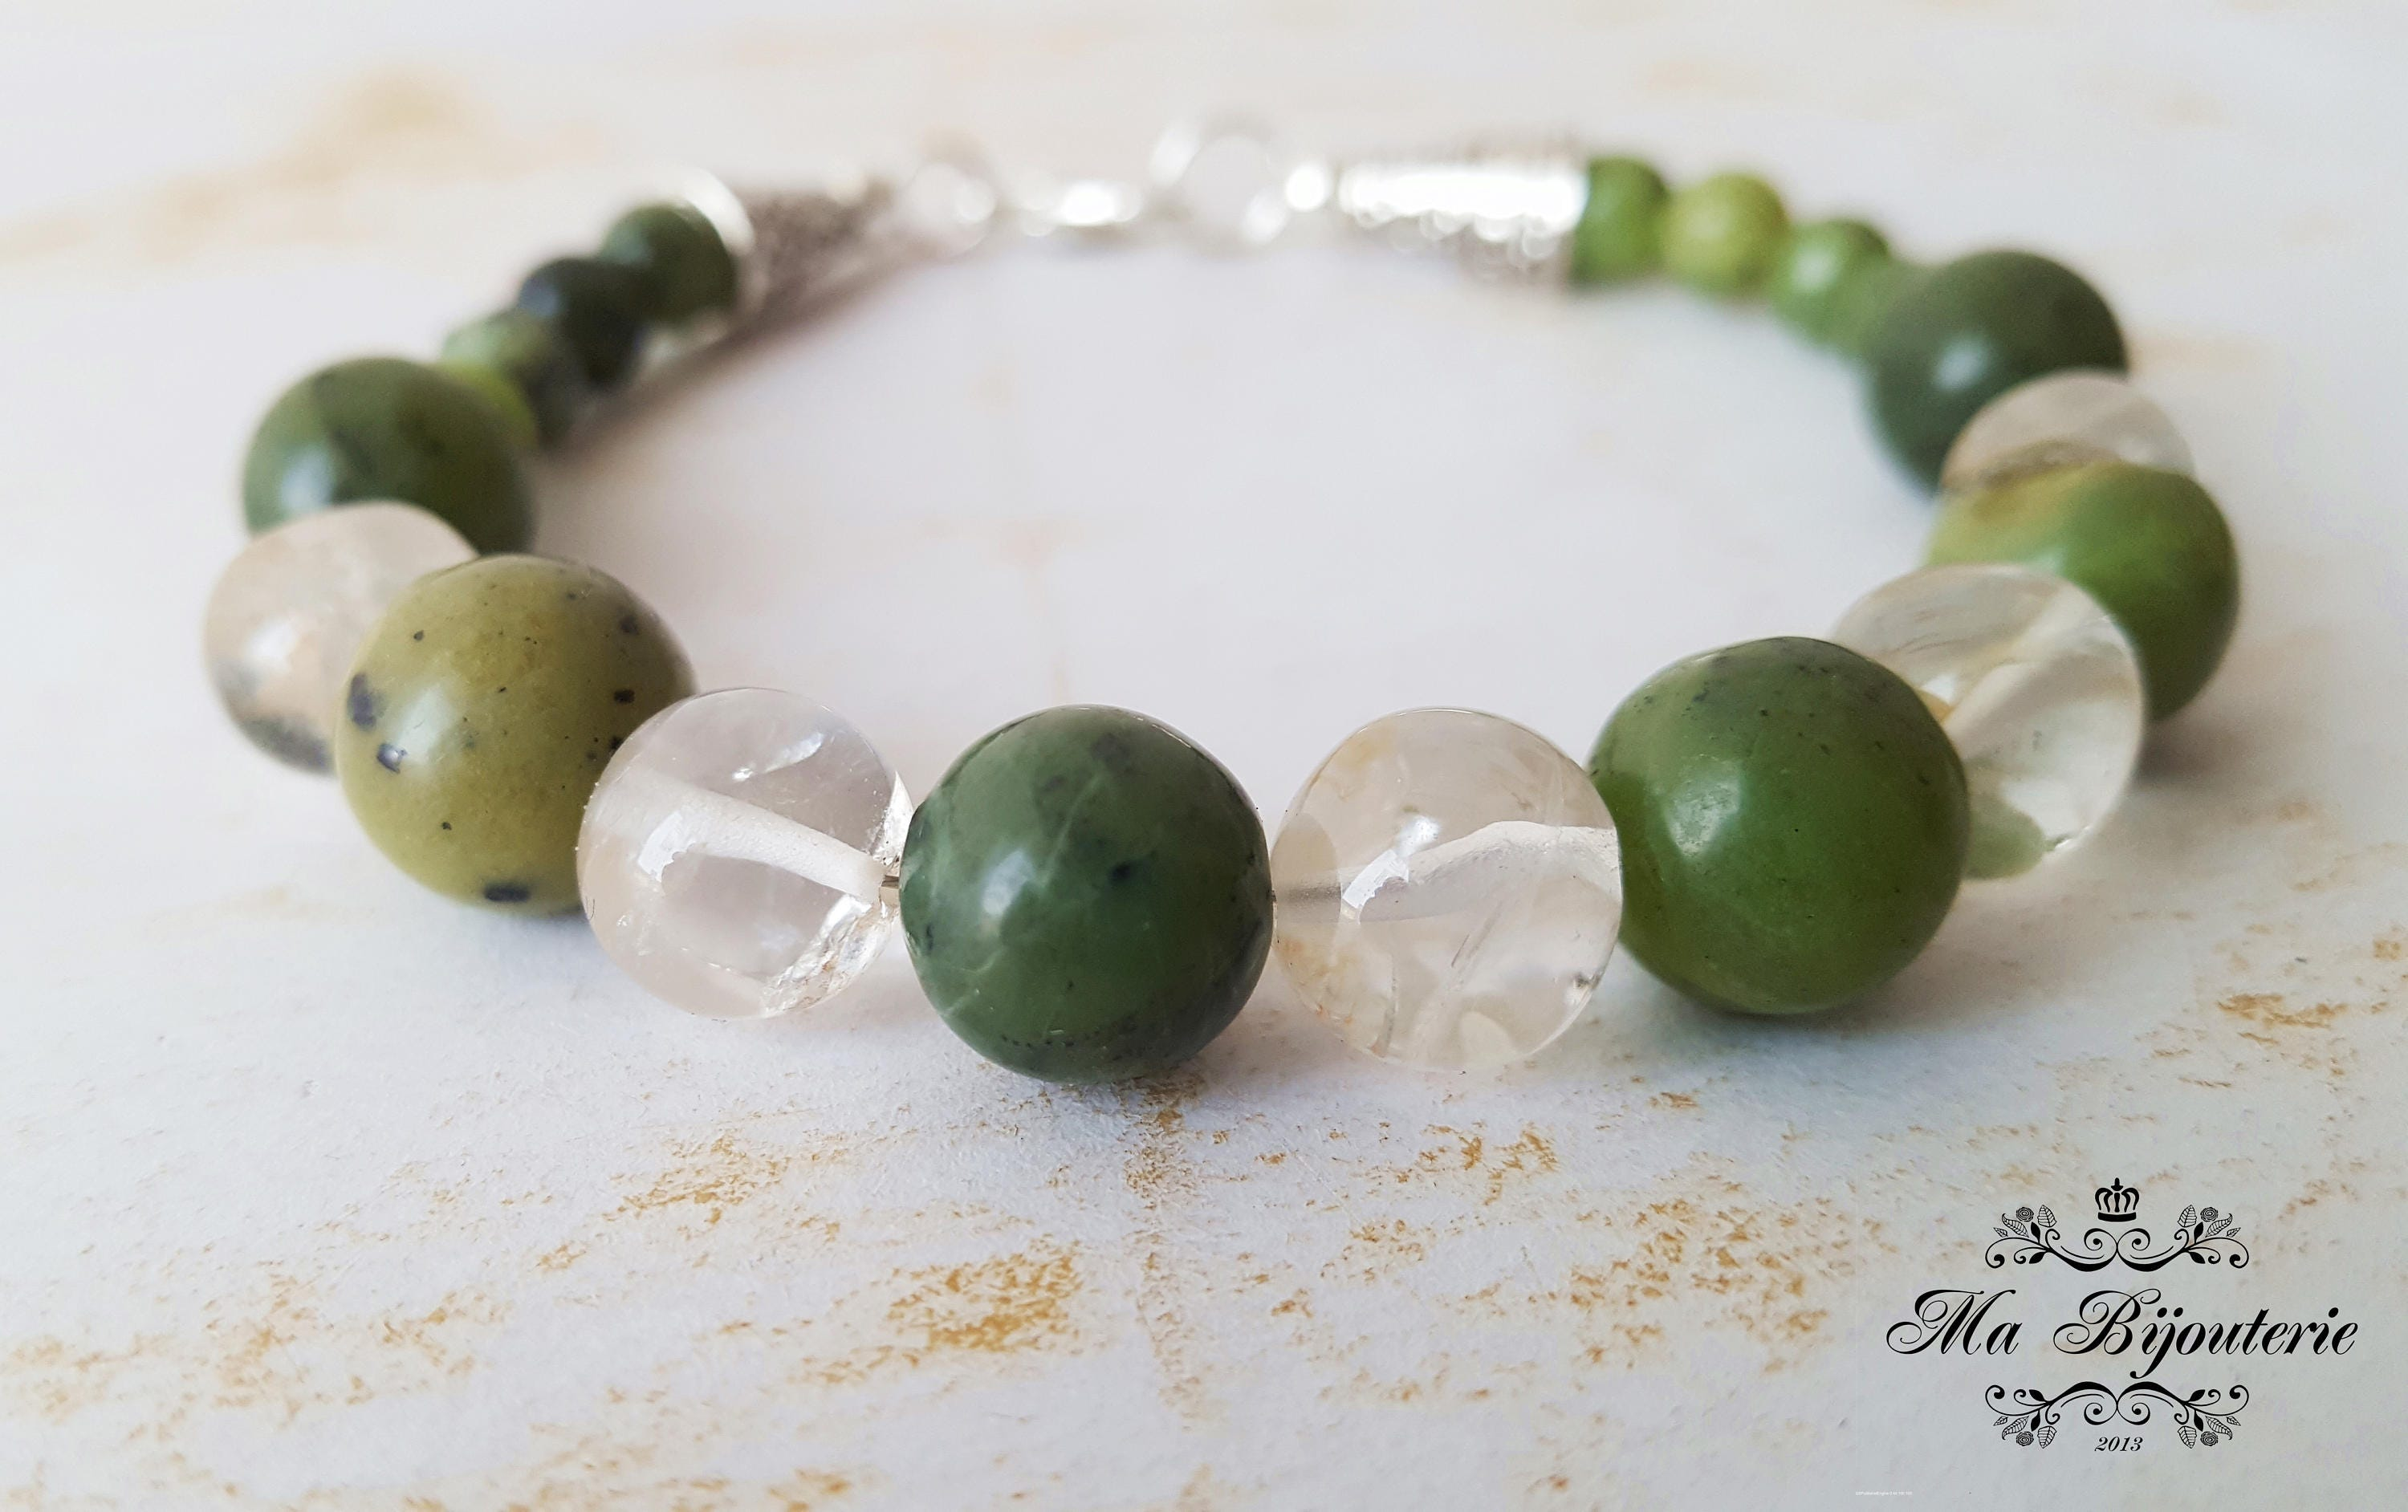 fullxfull gemstone birthstone green everyday p peridot il bracelet august jewelry stone